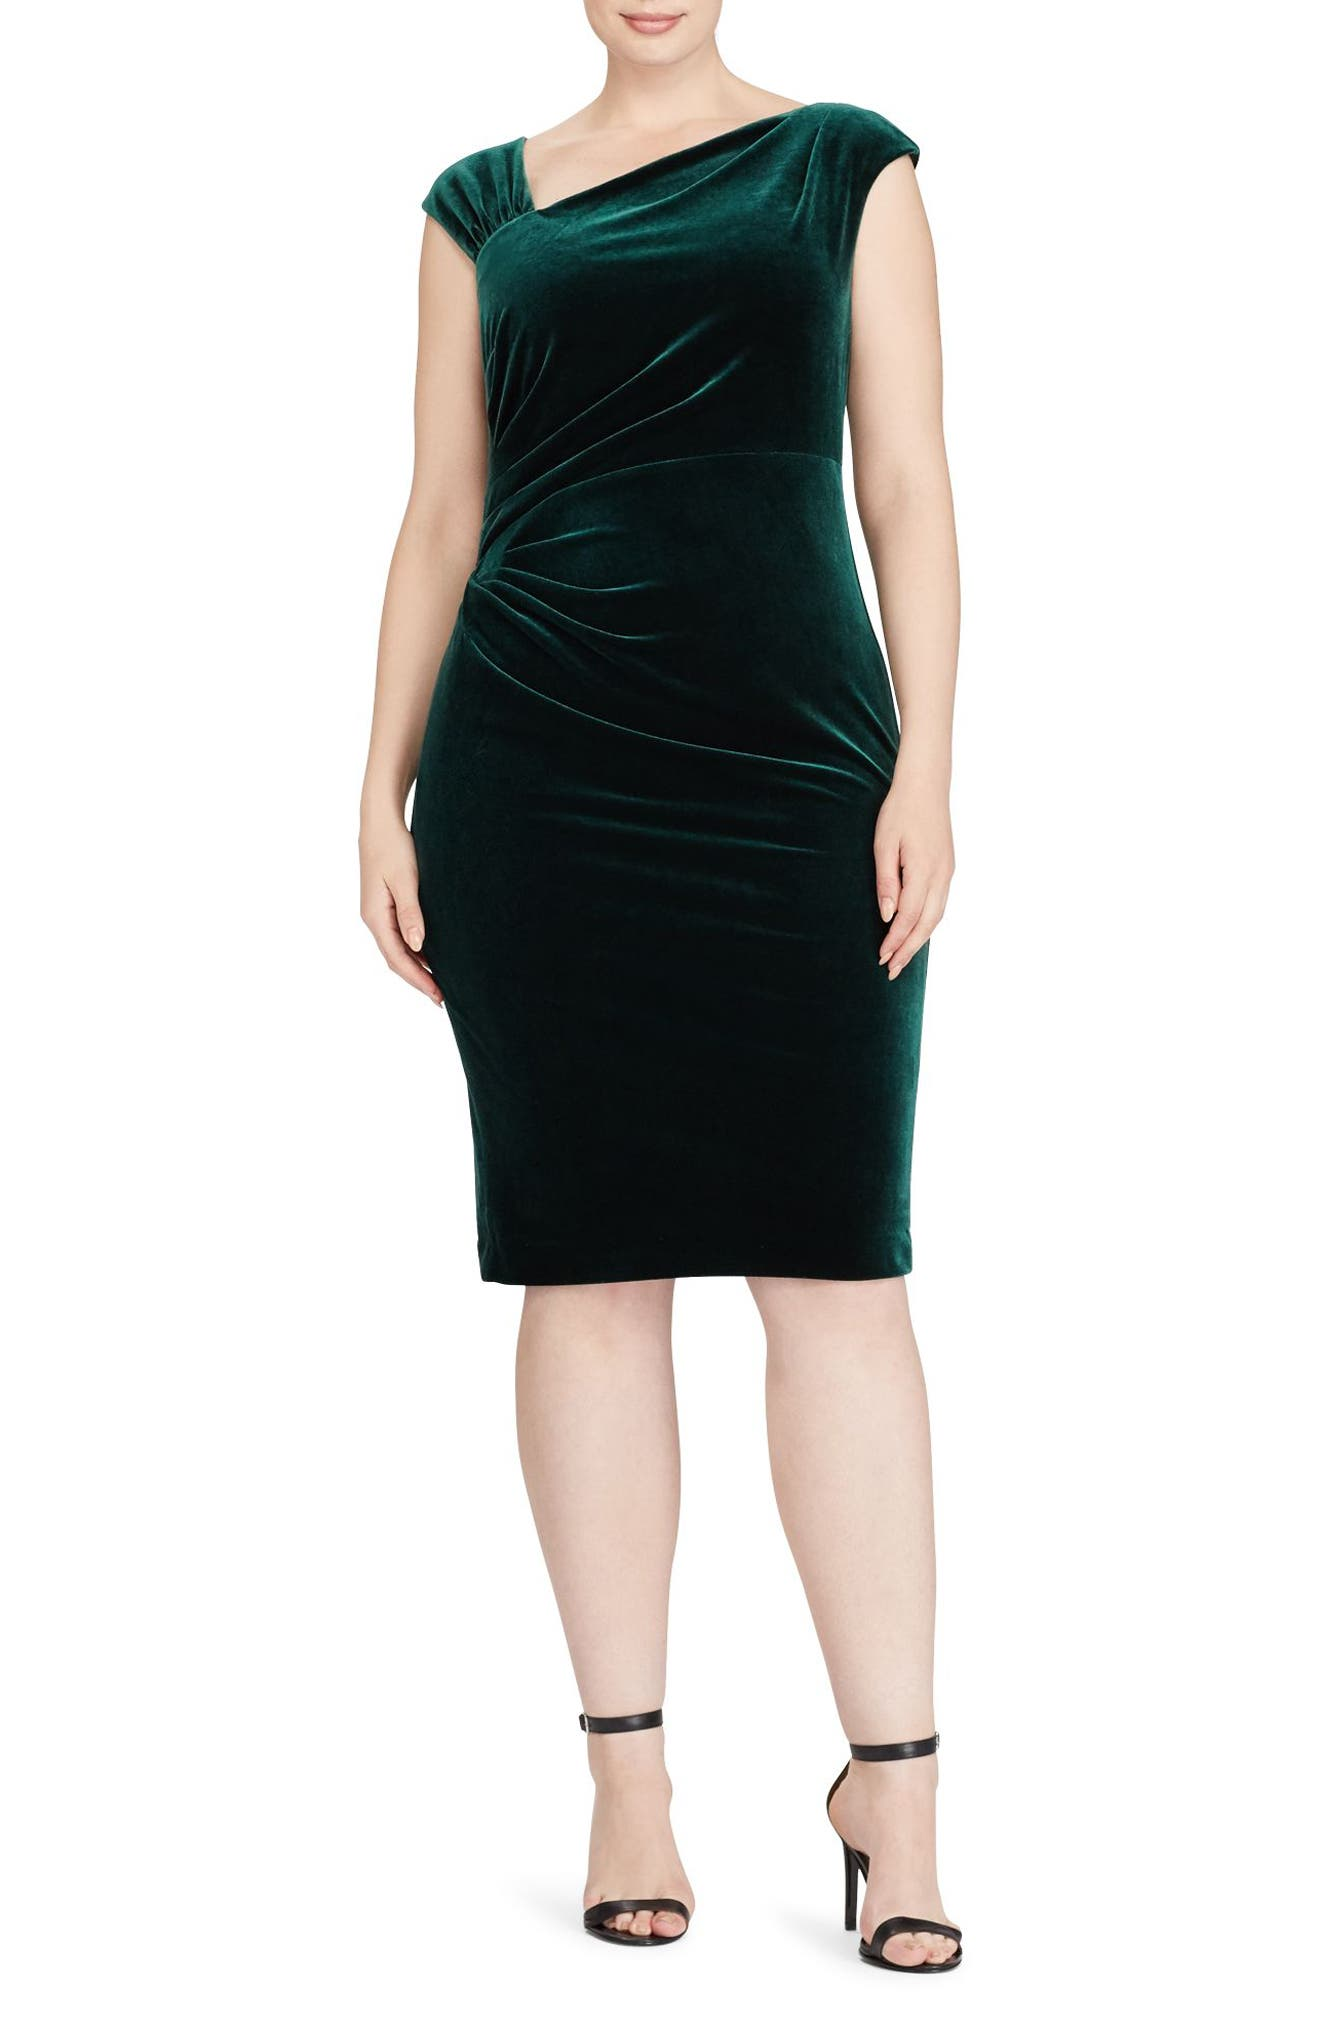 Alternate Image 1 Selected - Lauren Ralph Lauren Velvet Sheath Dress (Plus Size)